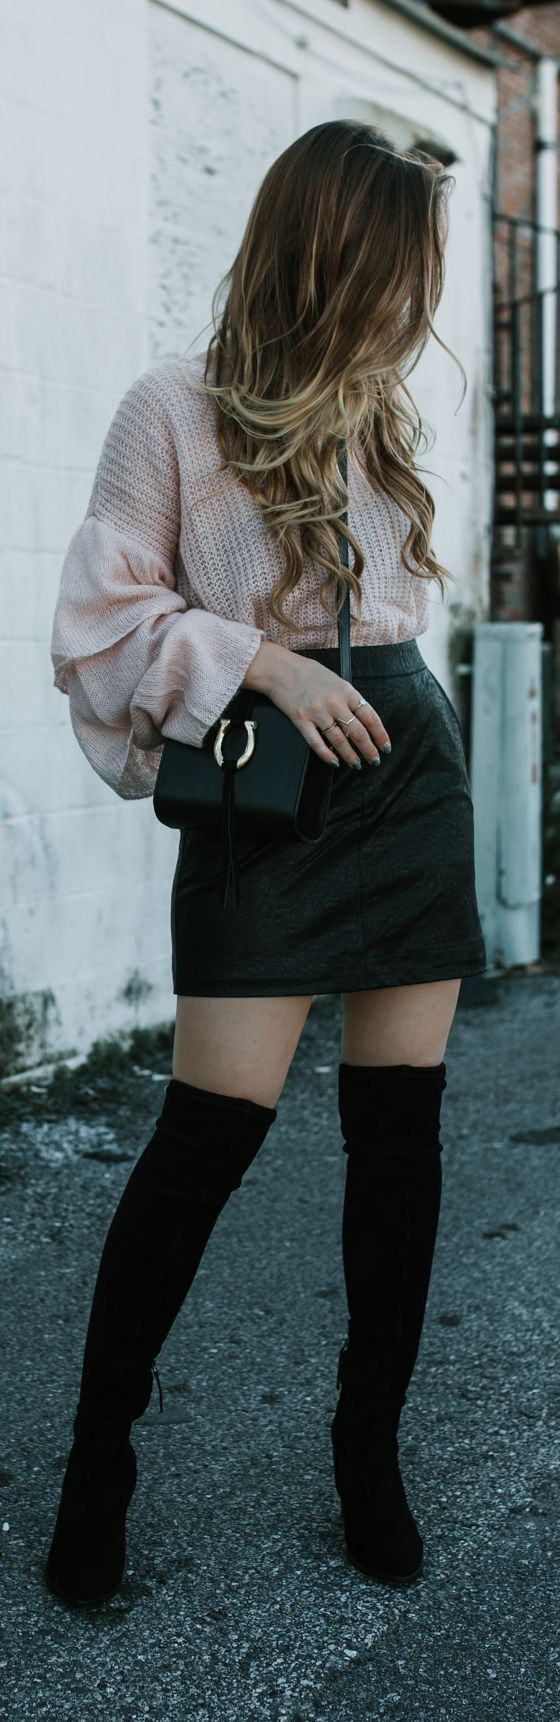 Cute weekend winter outfit styled with blush ruffled sleeve sweater, leather mini skirt, and black over the knee boots